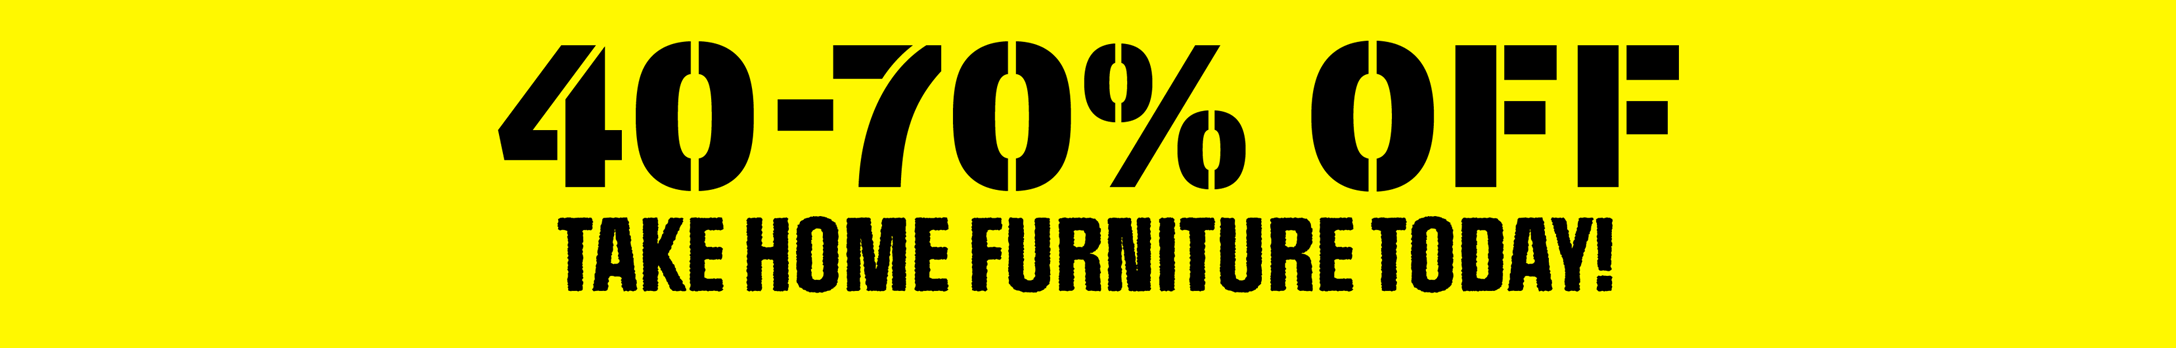 40-70% OFF Furniture - Yellow Tag Means Take It Home Today!